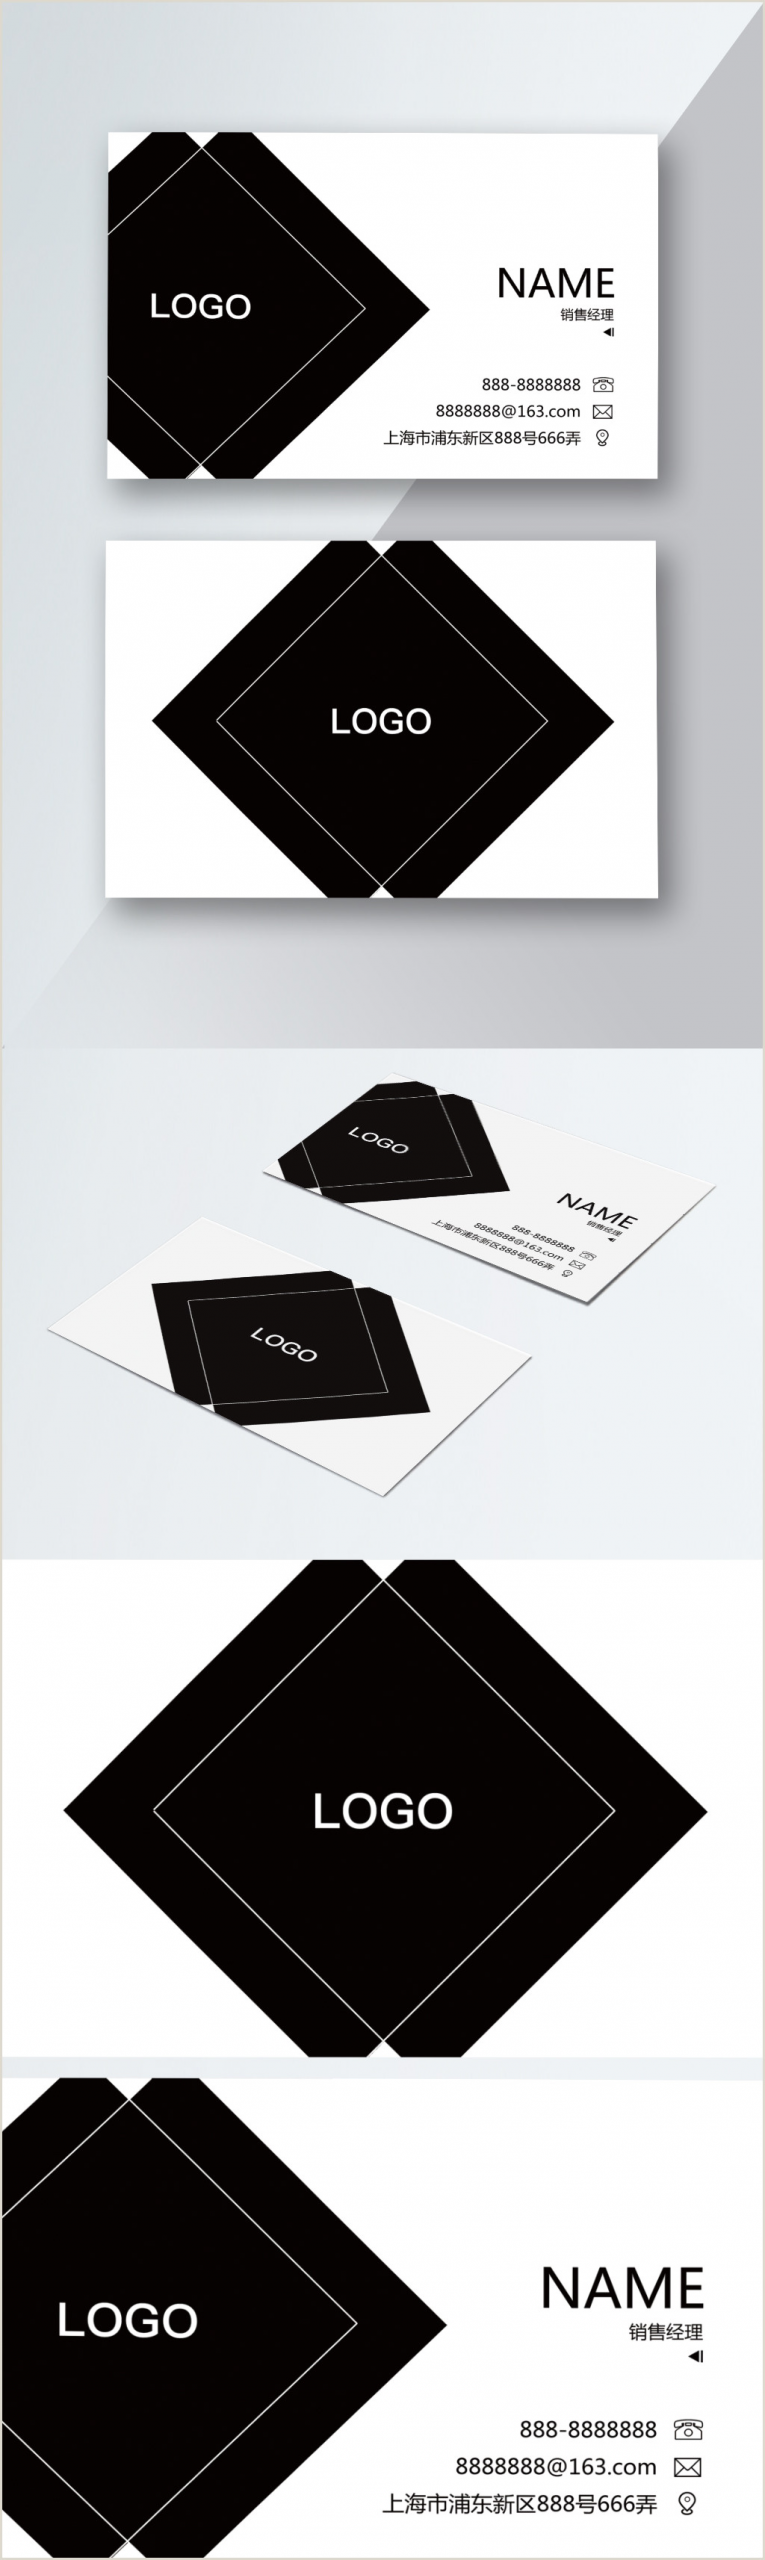 Simple Personal Business Cards Simple Personal Business Card Template Image Picture Free